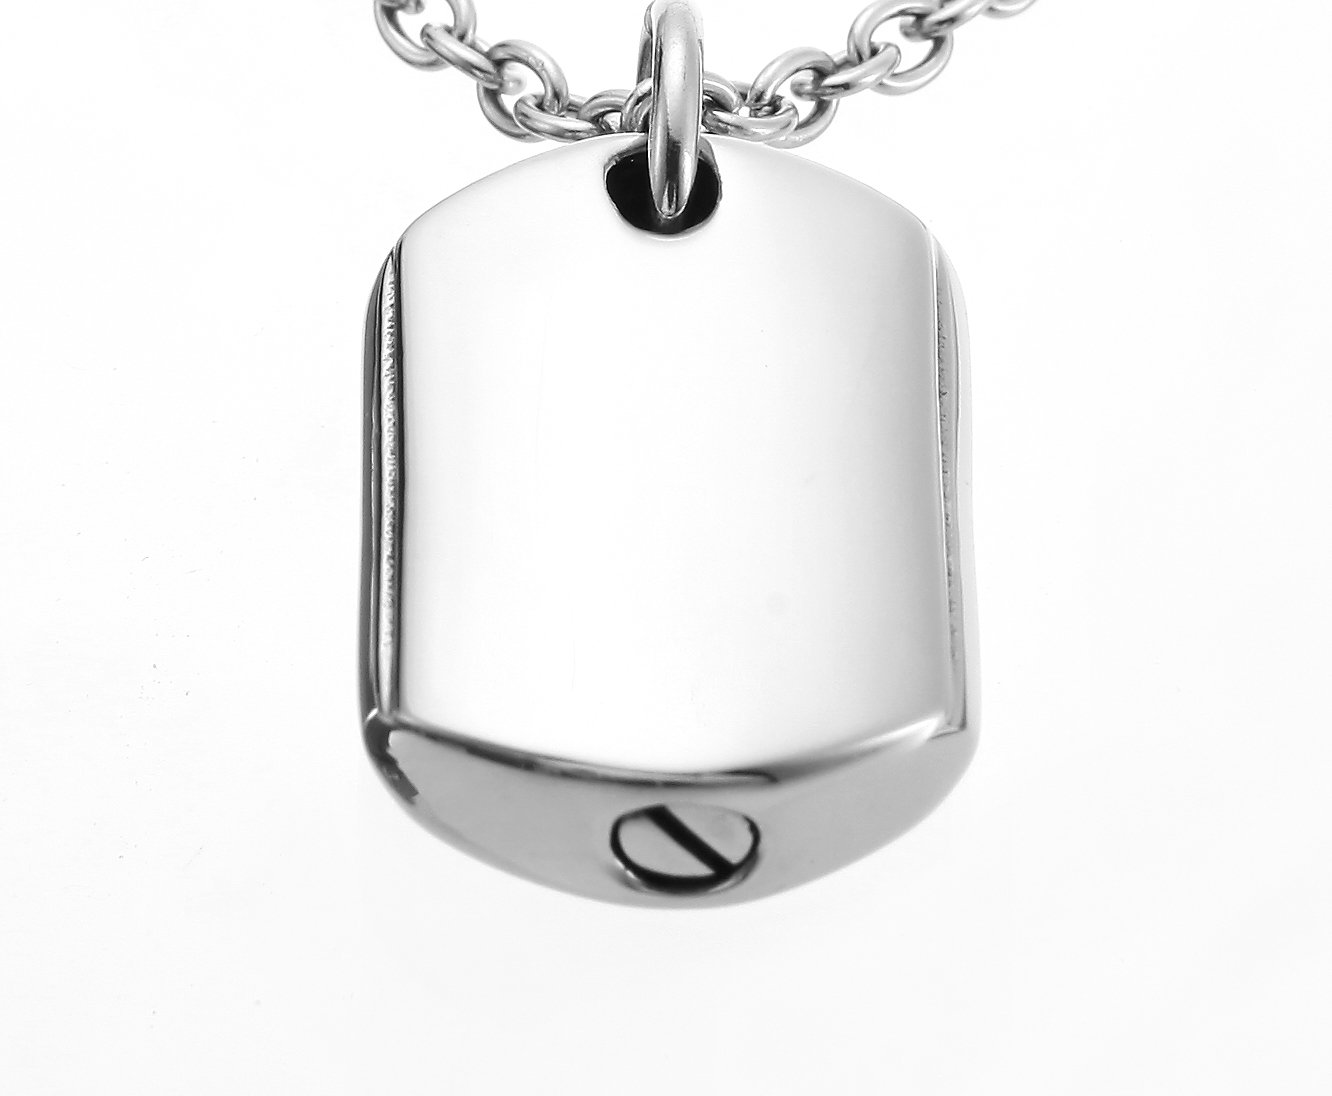 Zoey Jewelry Dog Tag Style Pendant Necklace Stainless Steel Cremation Urn Jewelry Ashes Funnel Filler Kit by Zoey Jewelry